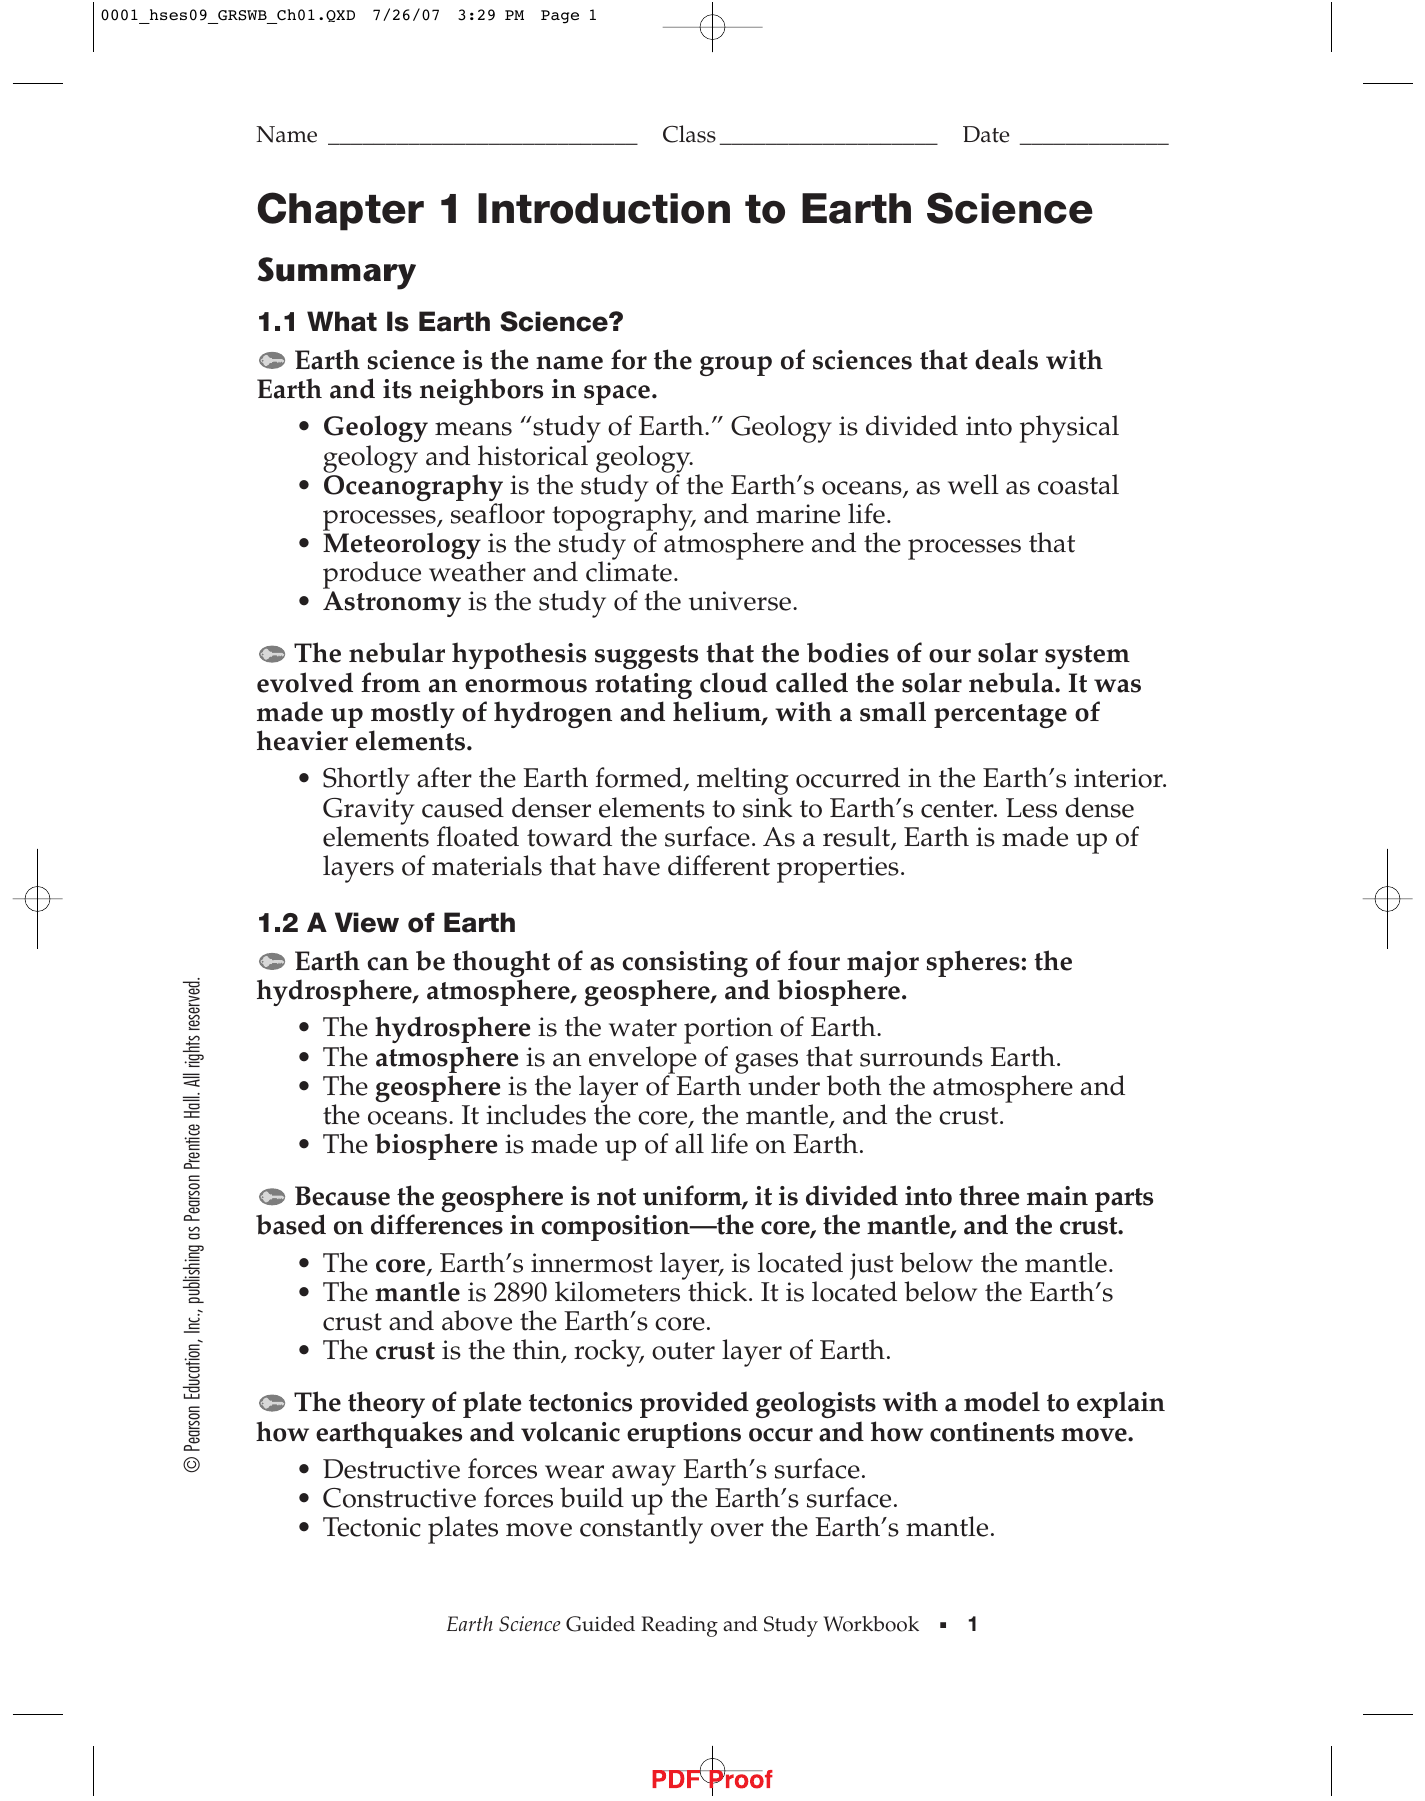 chapter 1 introduction to earth science rh studyres com Guided Reading Students Guided Reading Table